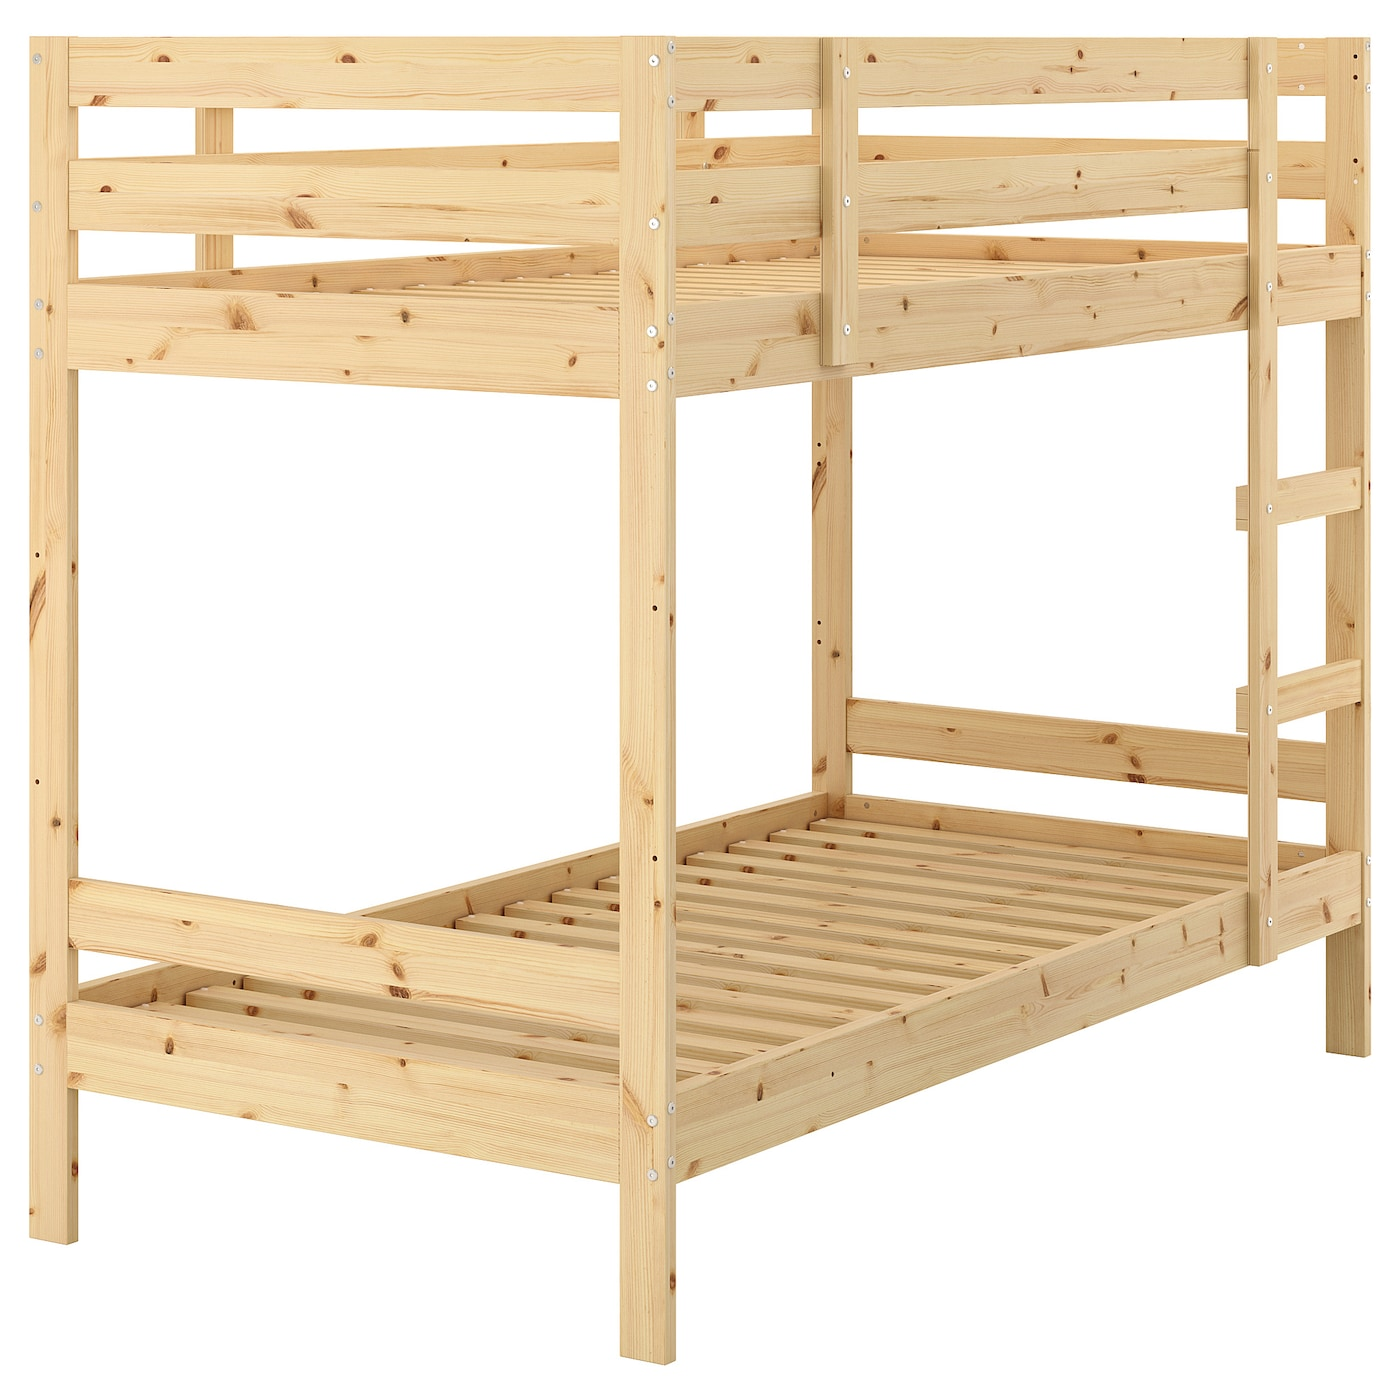 mydal bunk bed frame pine 90 x 200 cm ikea. Black Bedroom Furniture Sets. Home Design Ideas